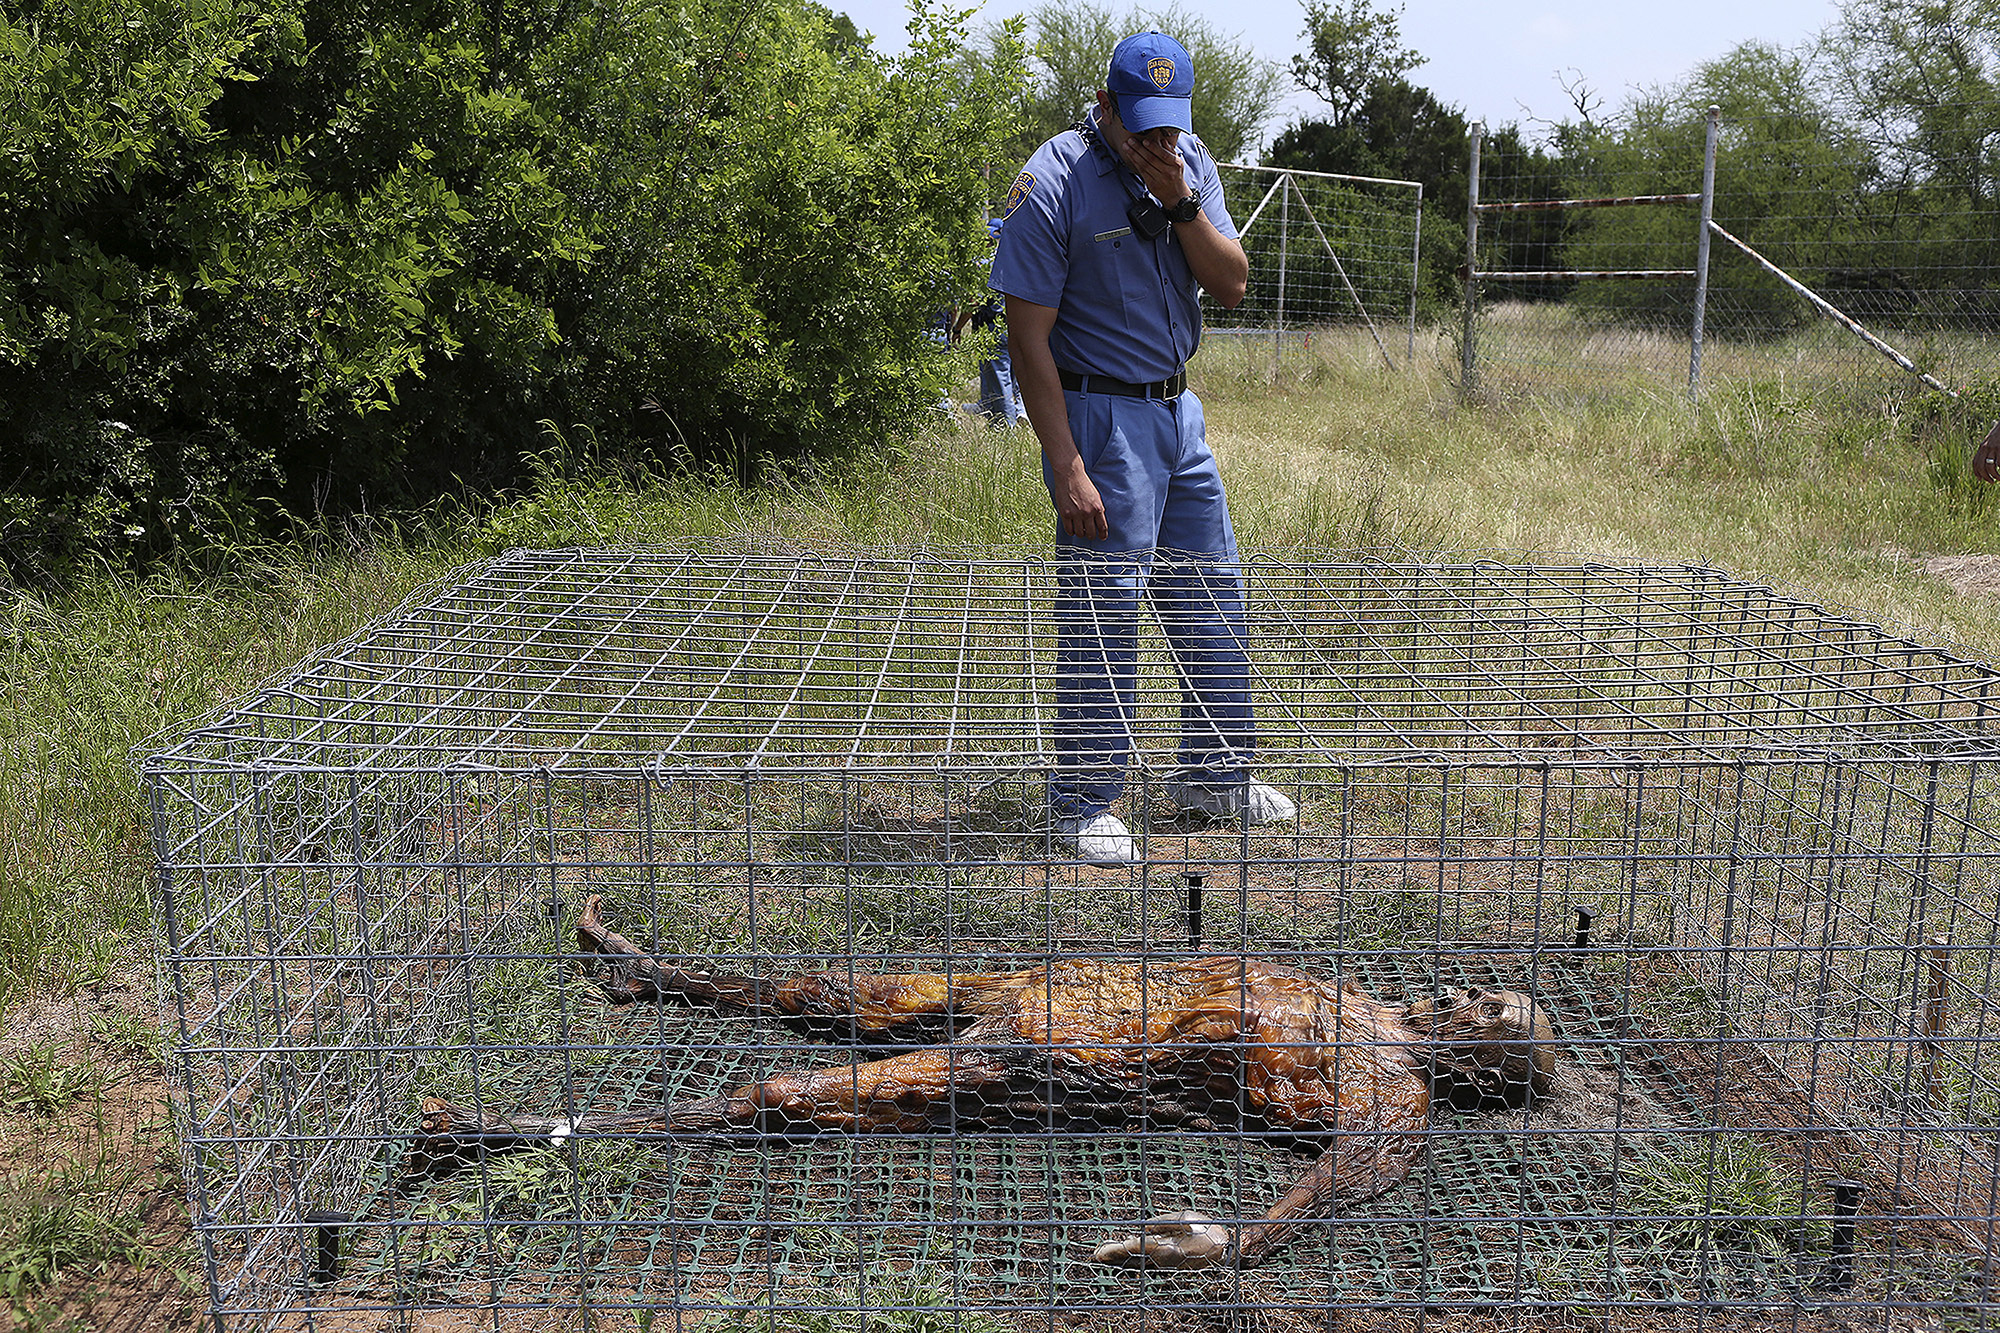 Body Farms In The United States